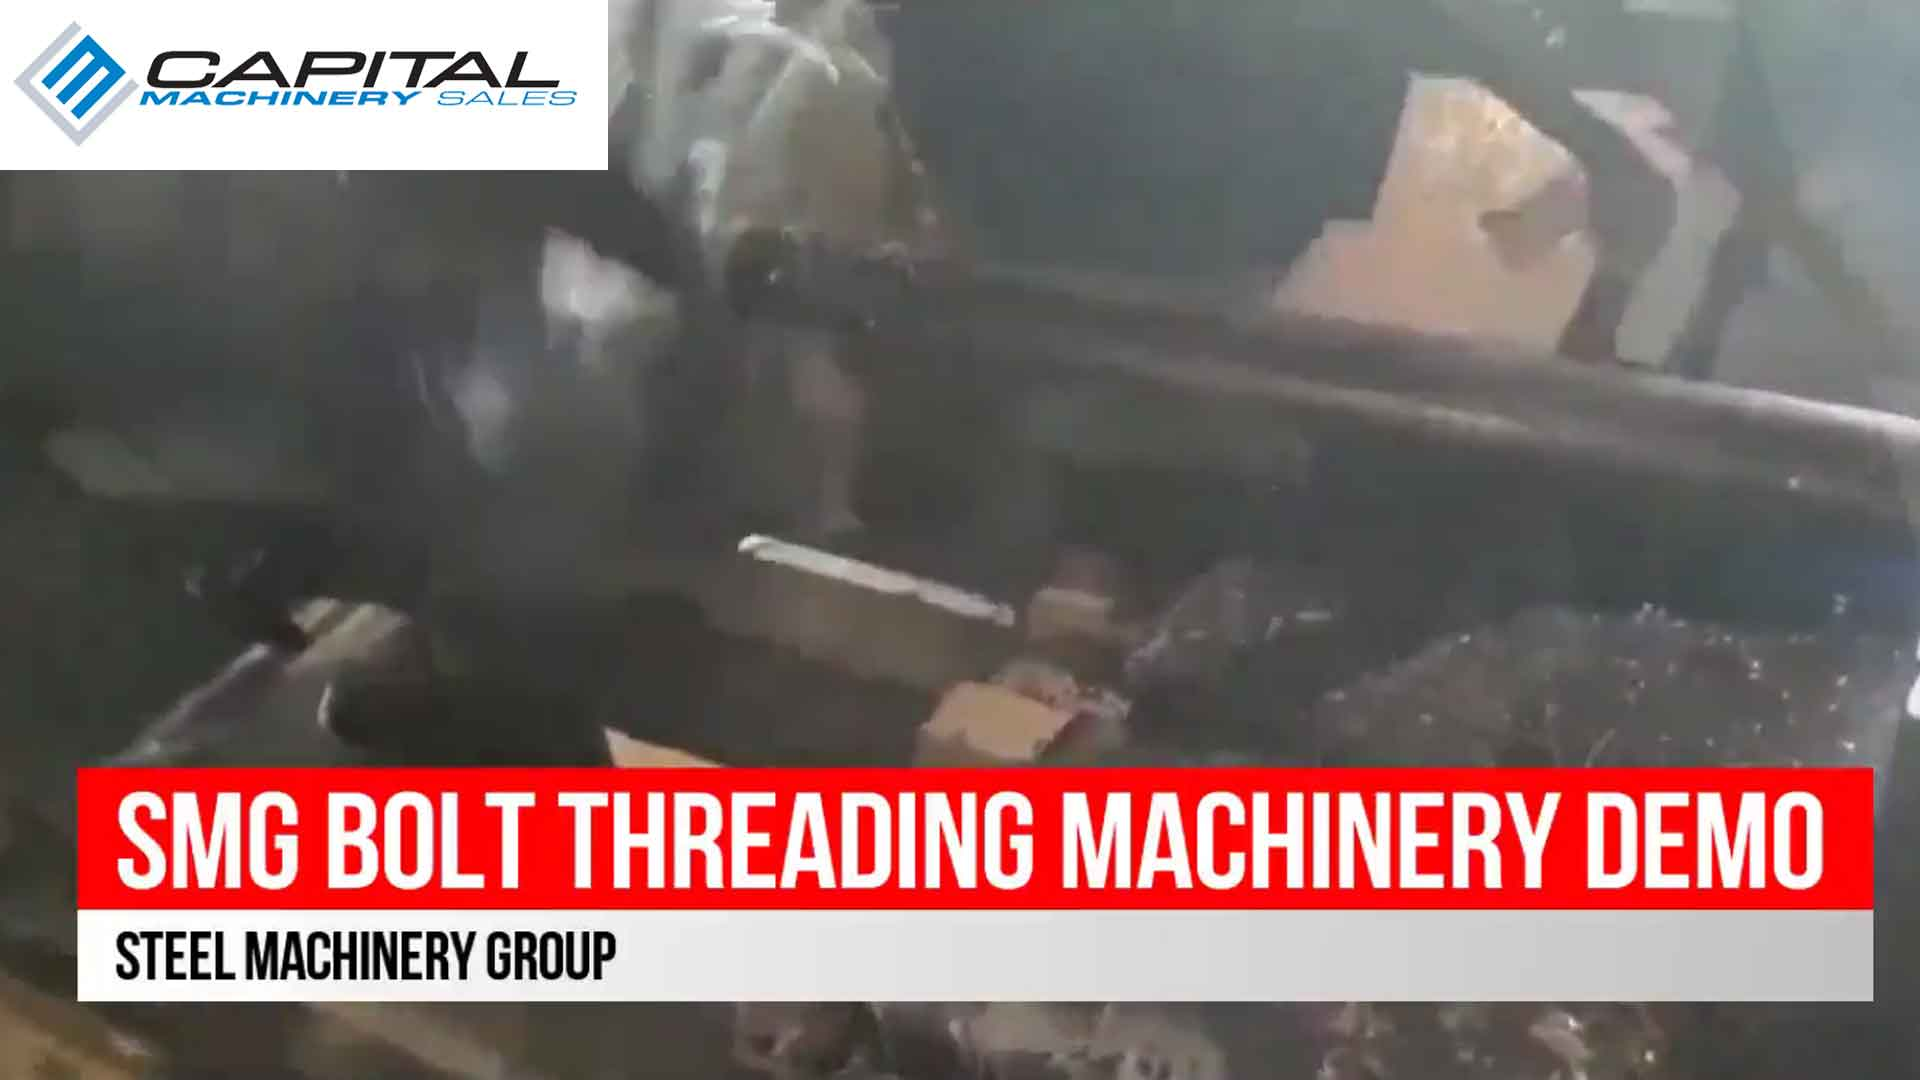 SMG Bolt Threading Machinery Demo Video